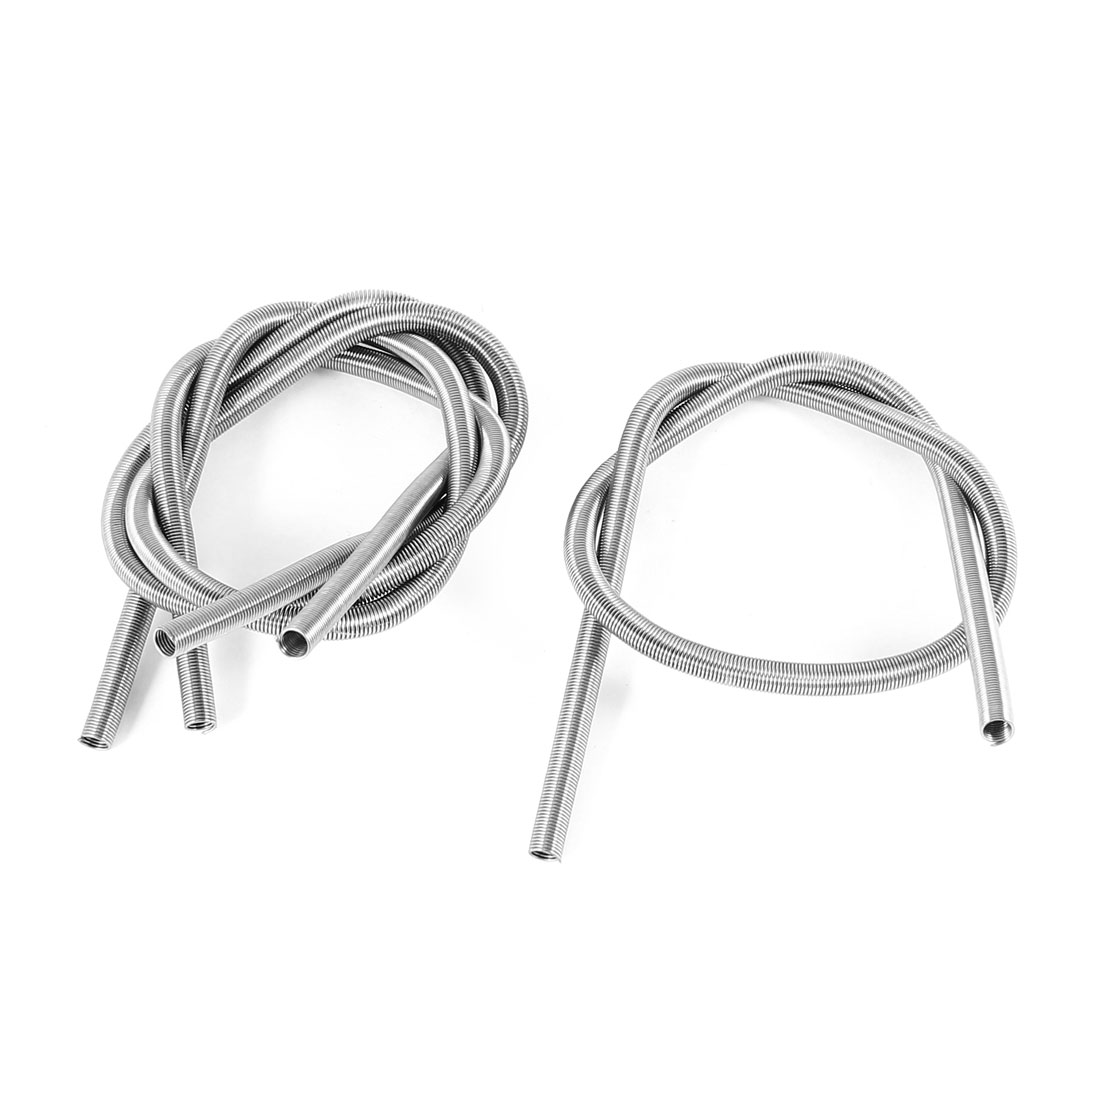 3PCS 220V 800W Watts Power 33mm Long Heating Element Coil Wire Leads for Kiln Furnace Heater